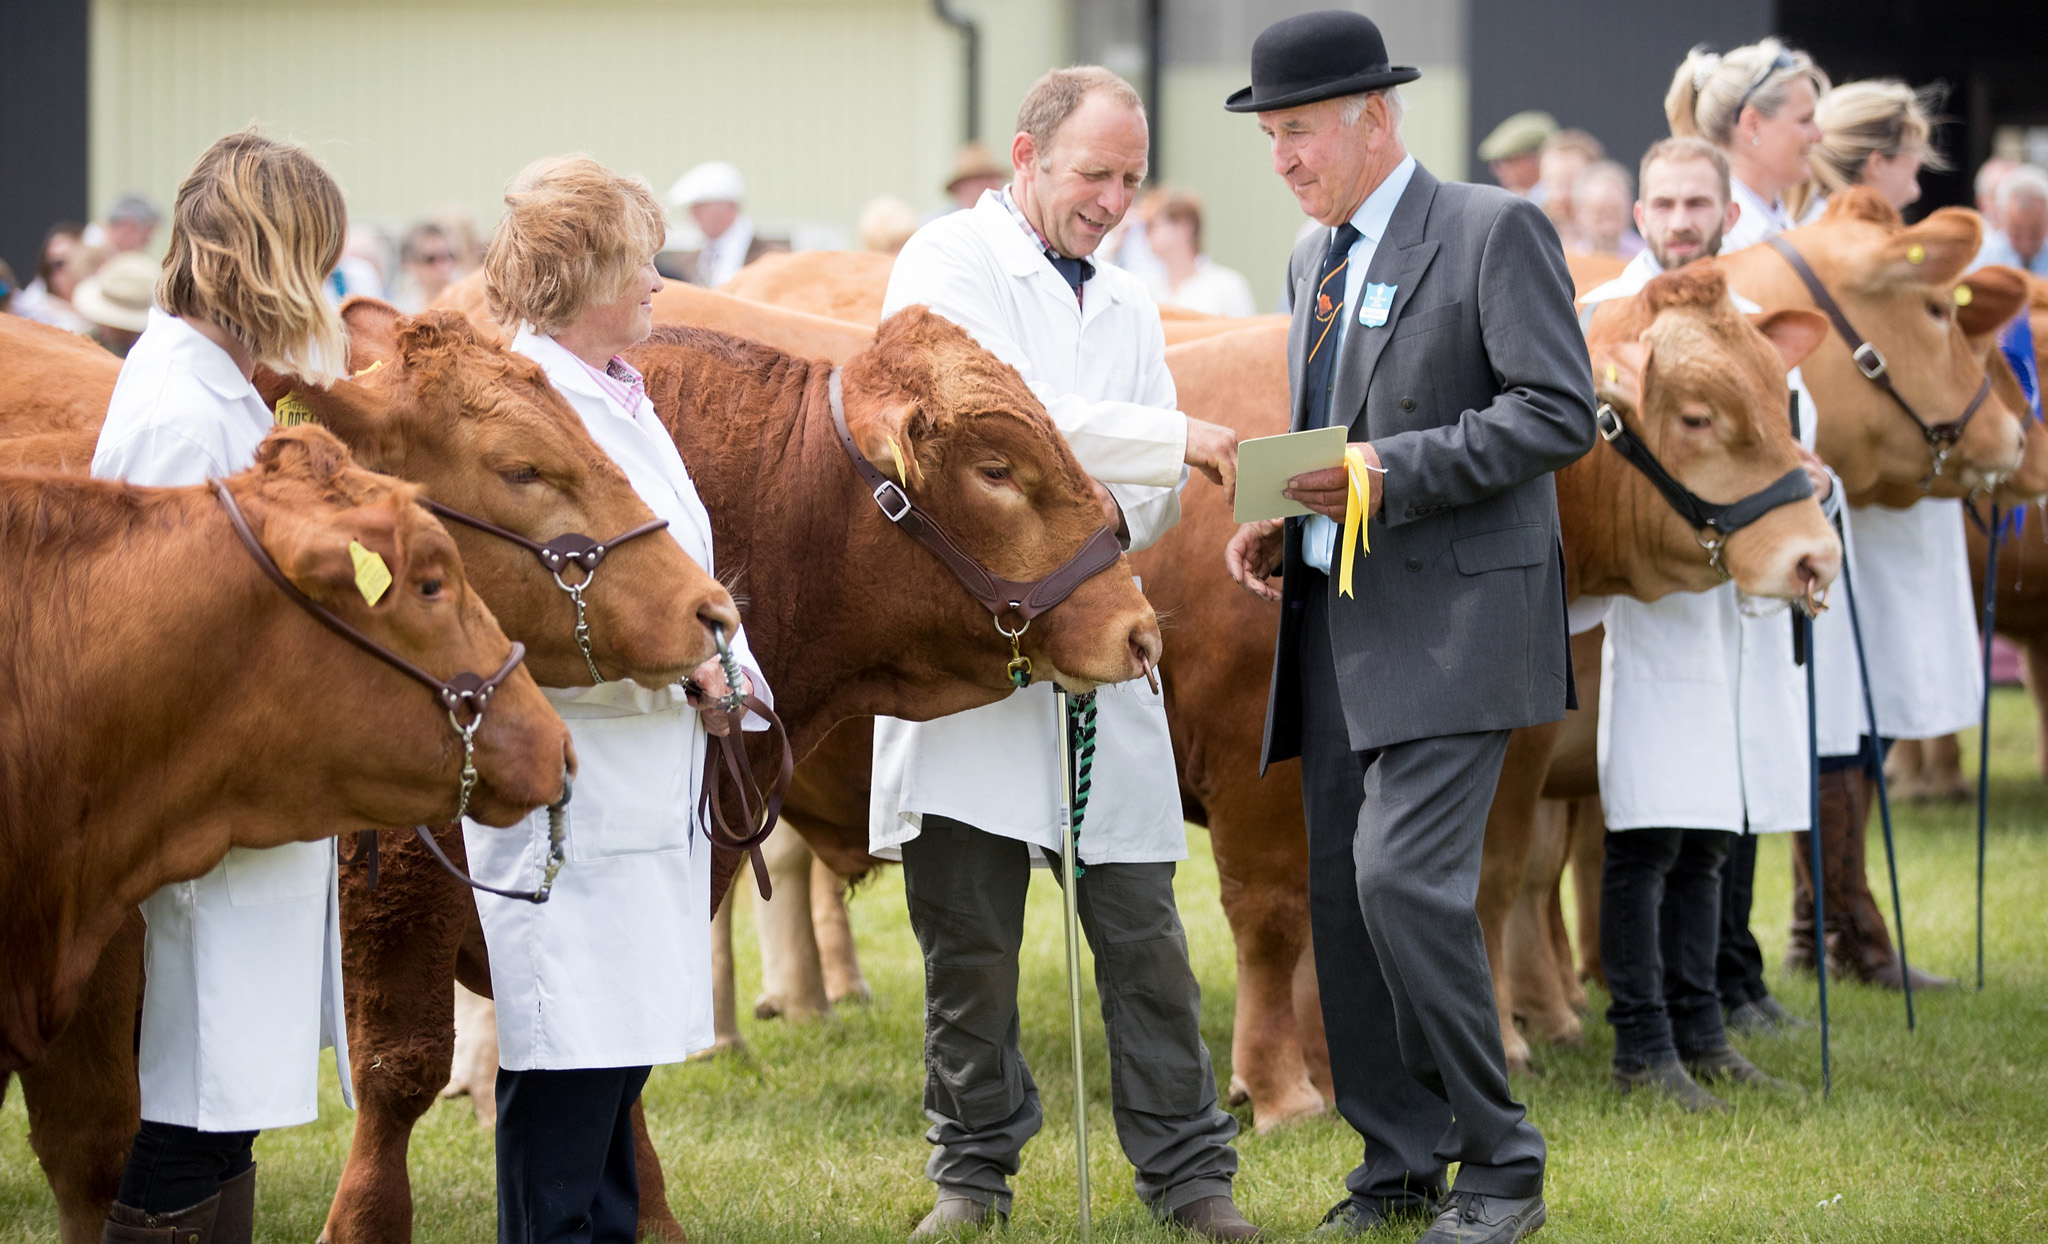 JUNE 09:  South Devon cattle are judged in the show ring on the first day of the Royal Cornwall Show near Wadebridge on June 9, 2016 in Cornwall, England. More than 100,000 visitors are expected at this year's show, which runs until Saturday, and is claimed to be the